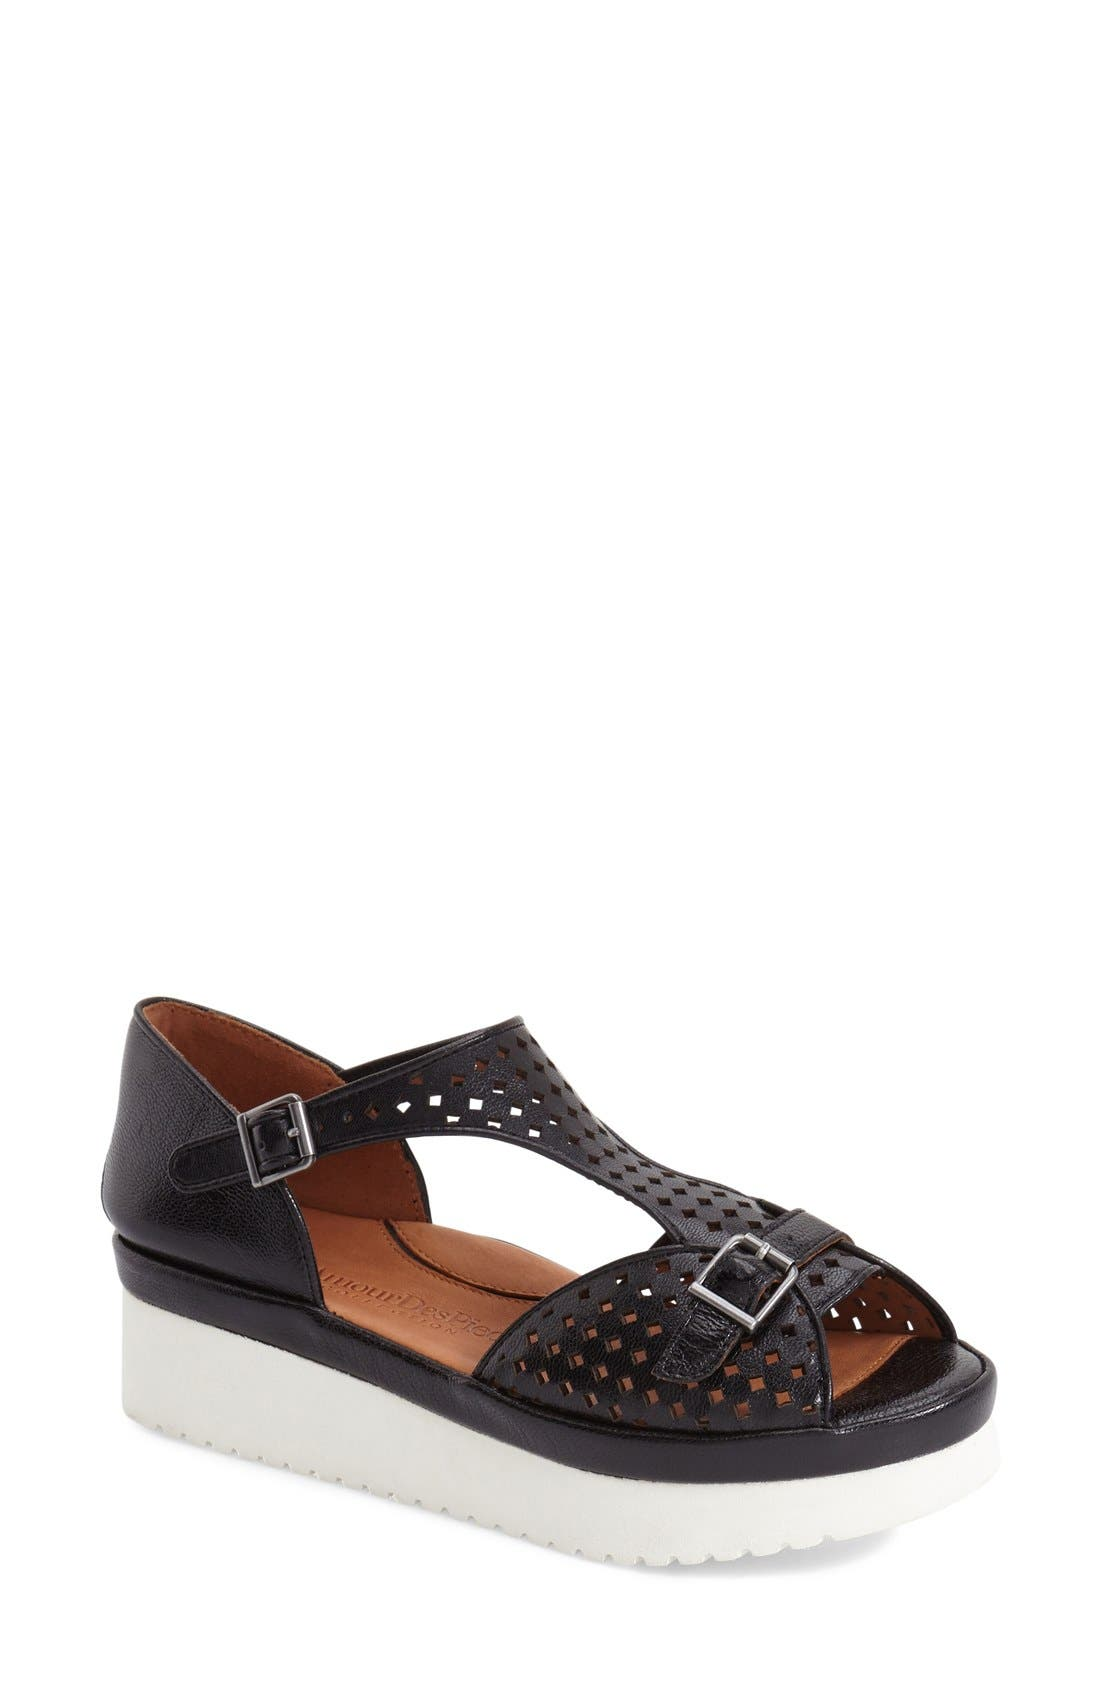 'Audric' Platform T-Strap Sandal,                         Main,                         color, Black/ White Leather